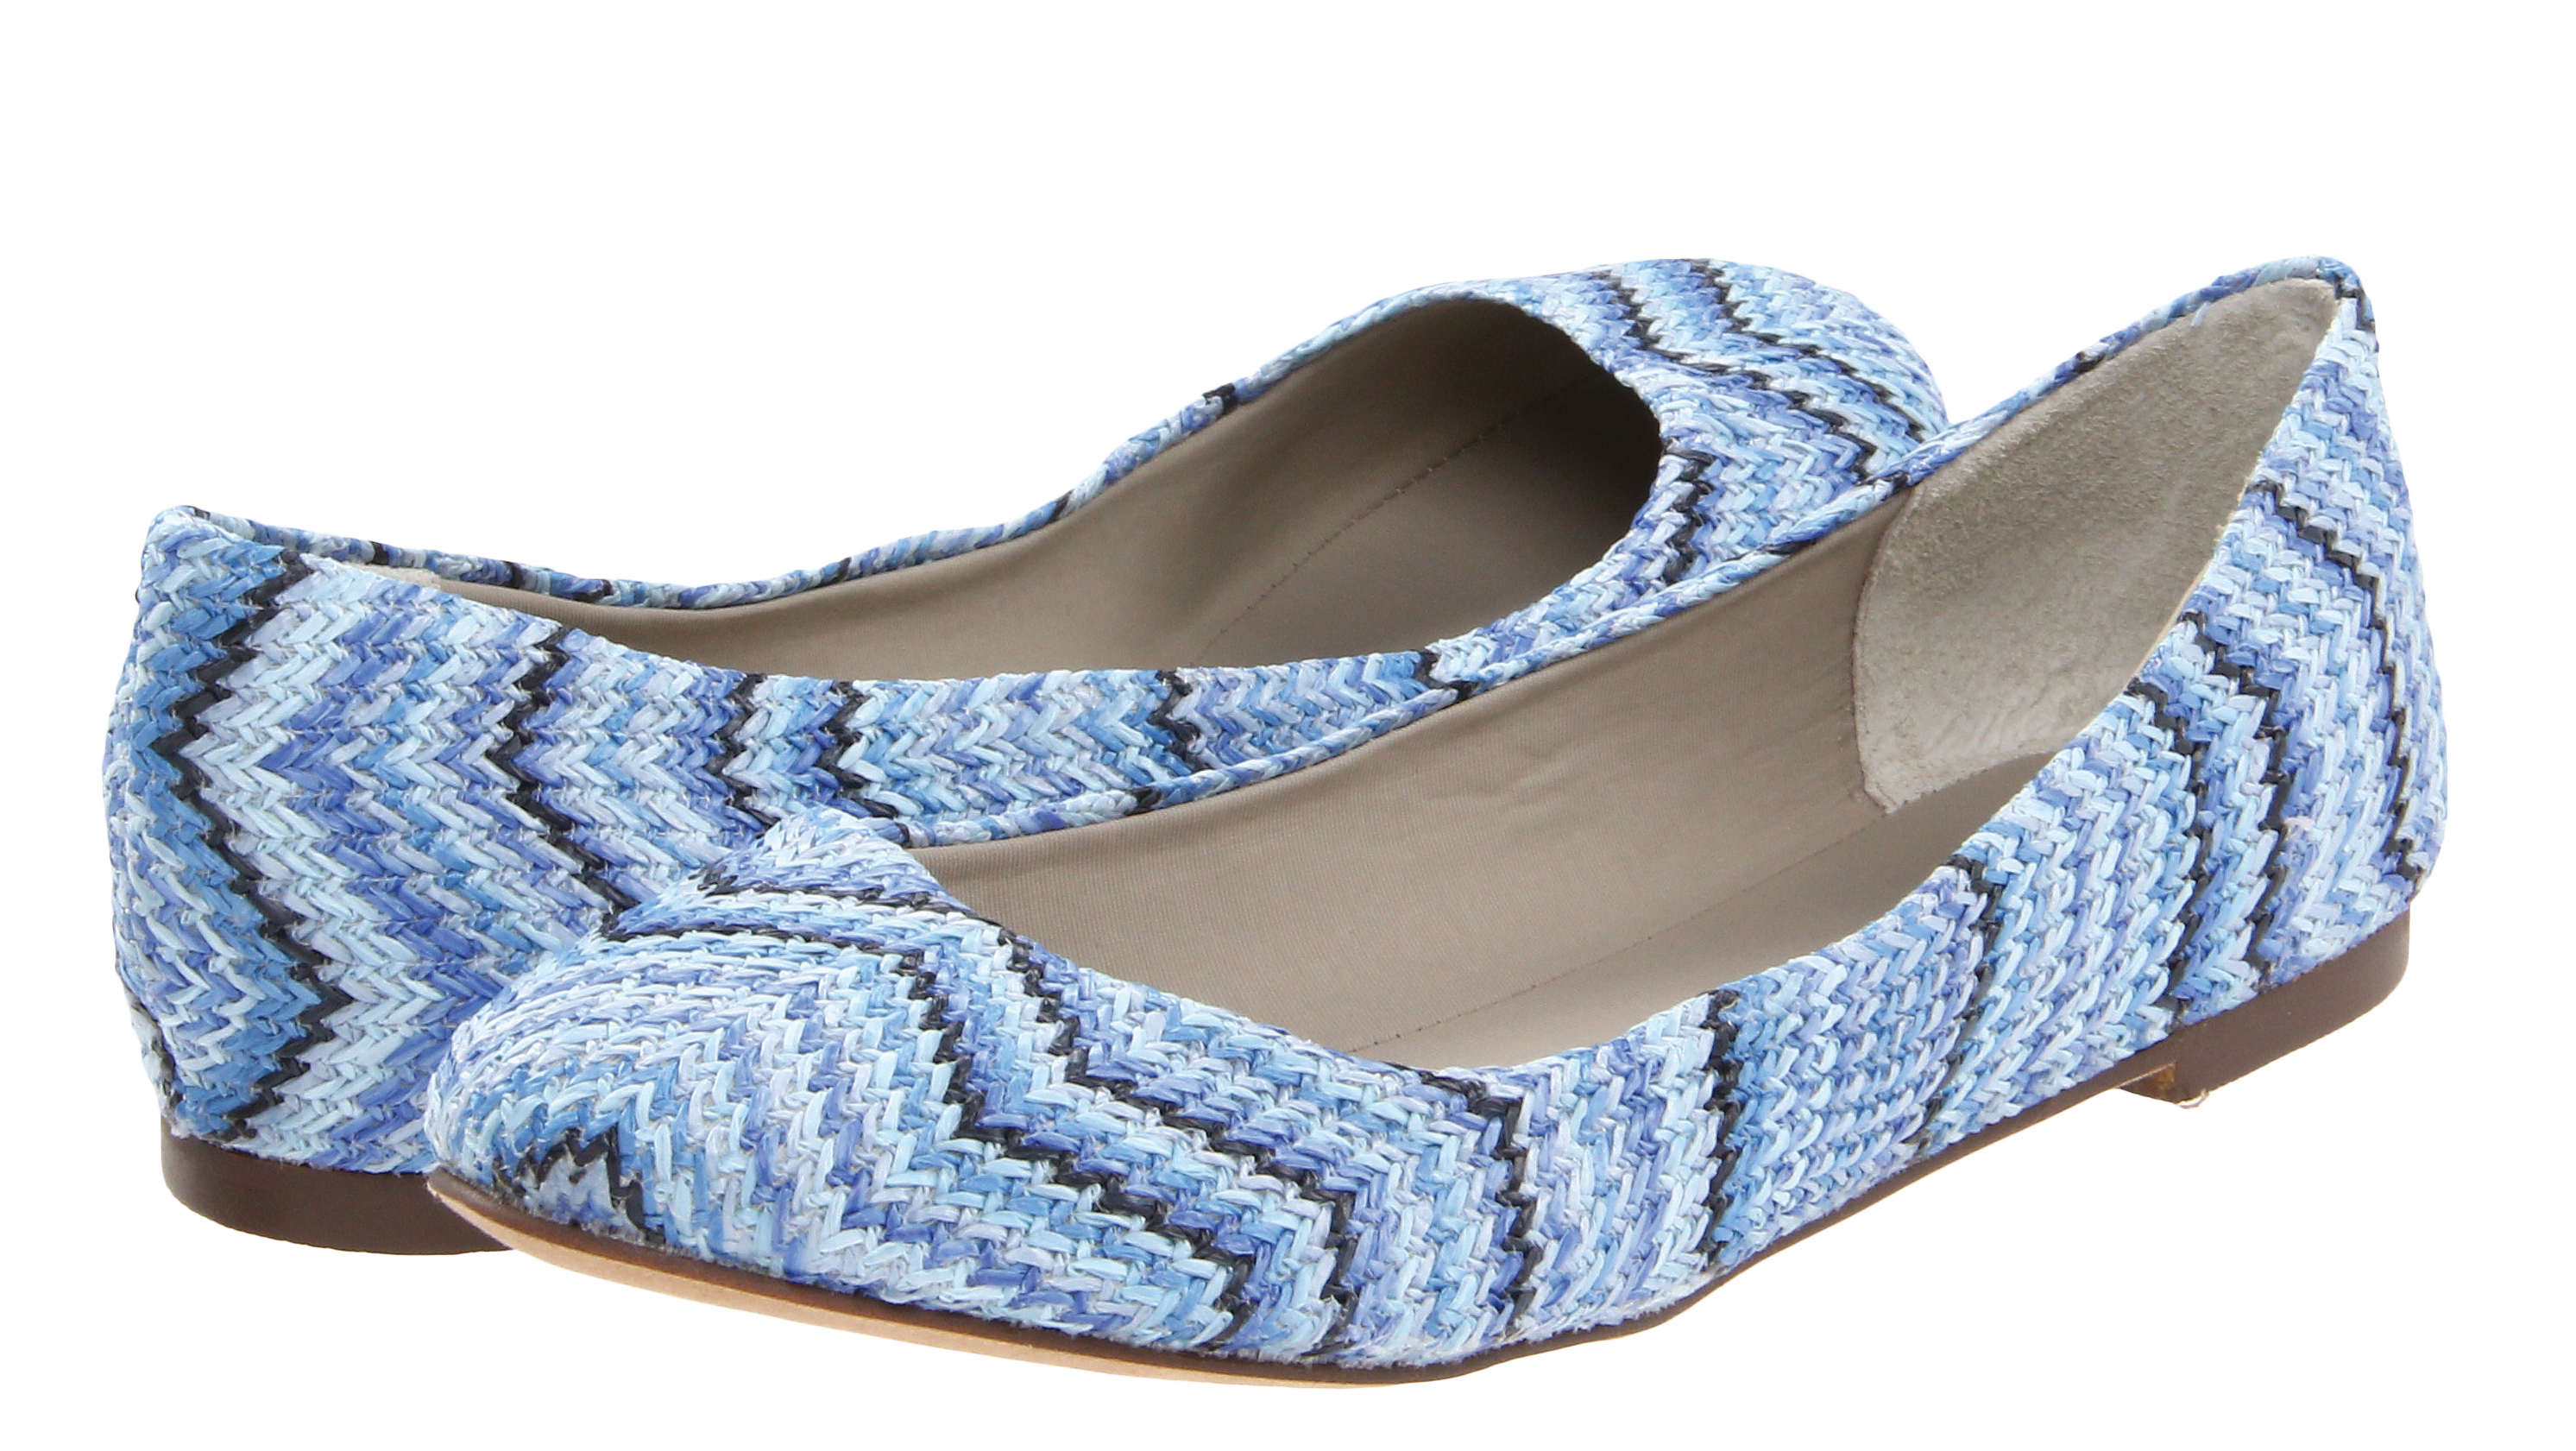 This patterned ballet flat can dress an outfit up or down